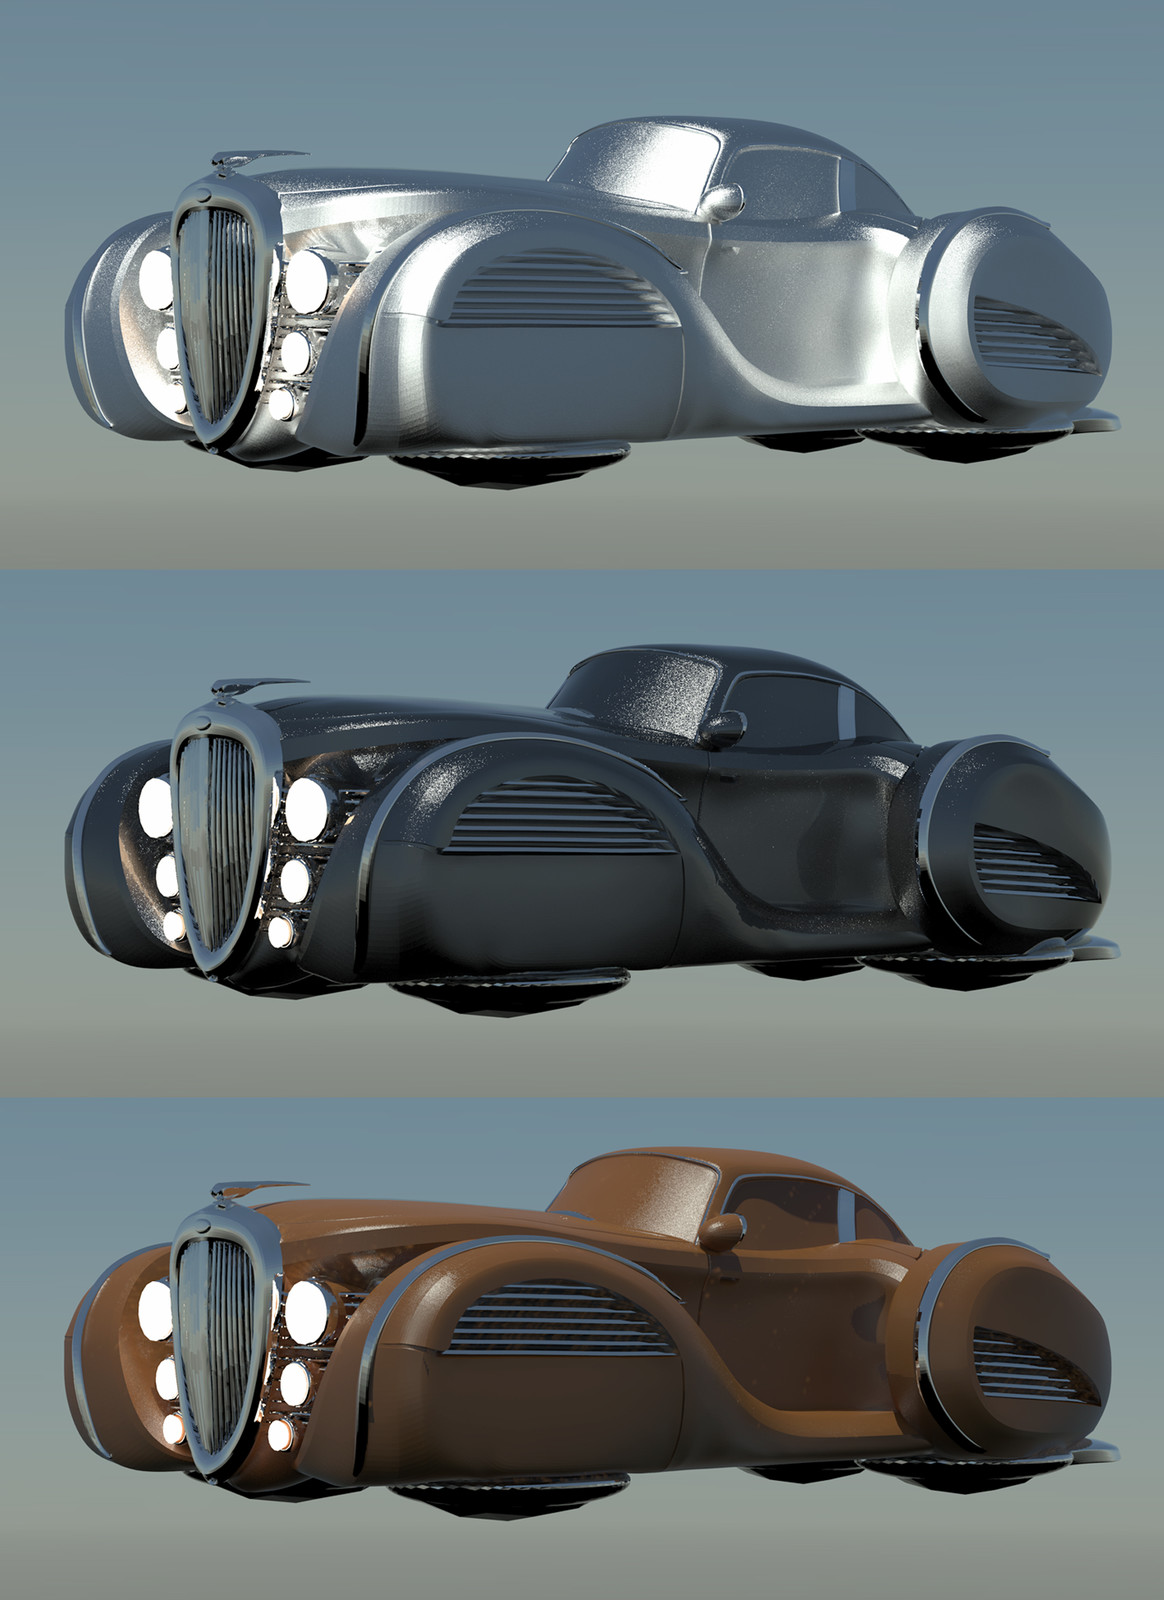 3 render passes for concept paint over